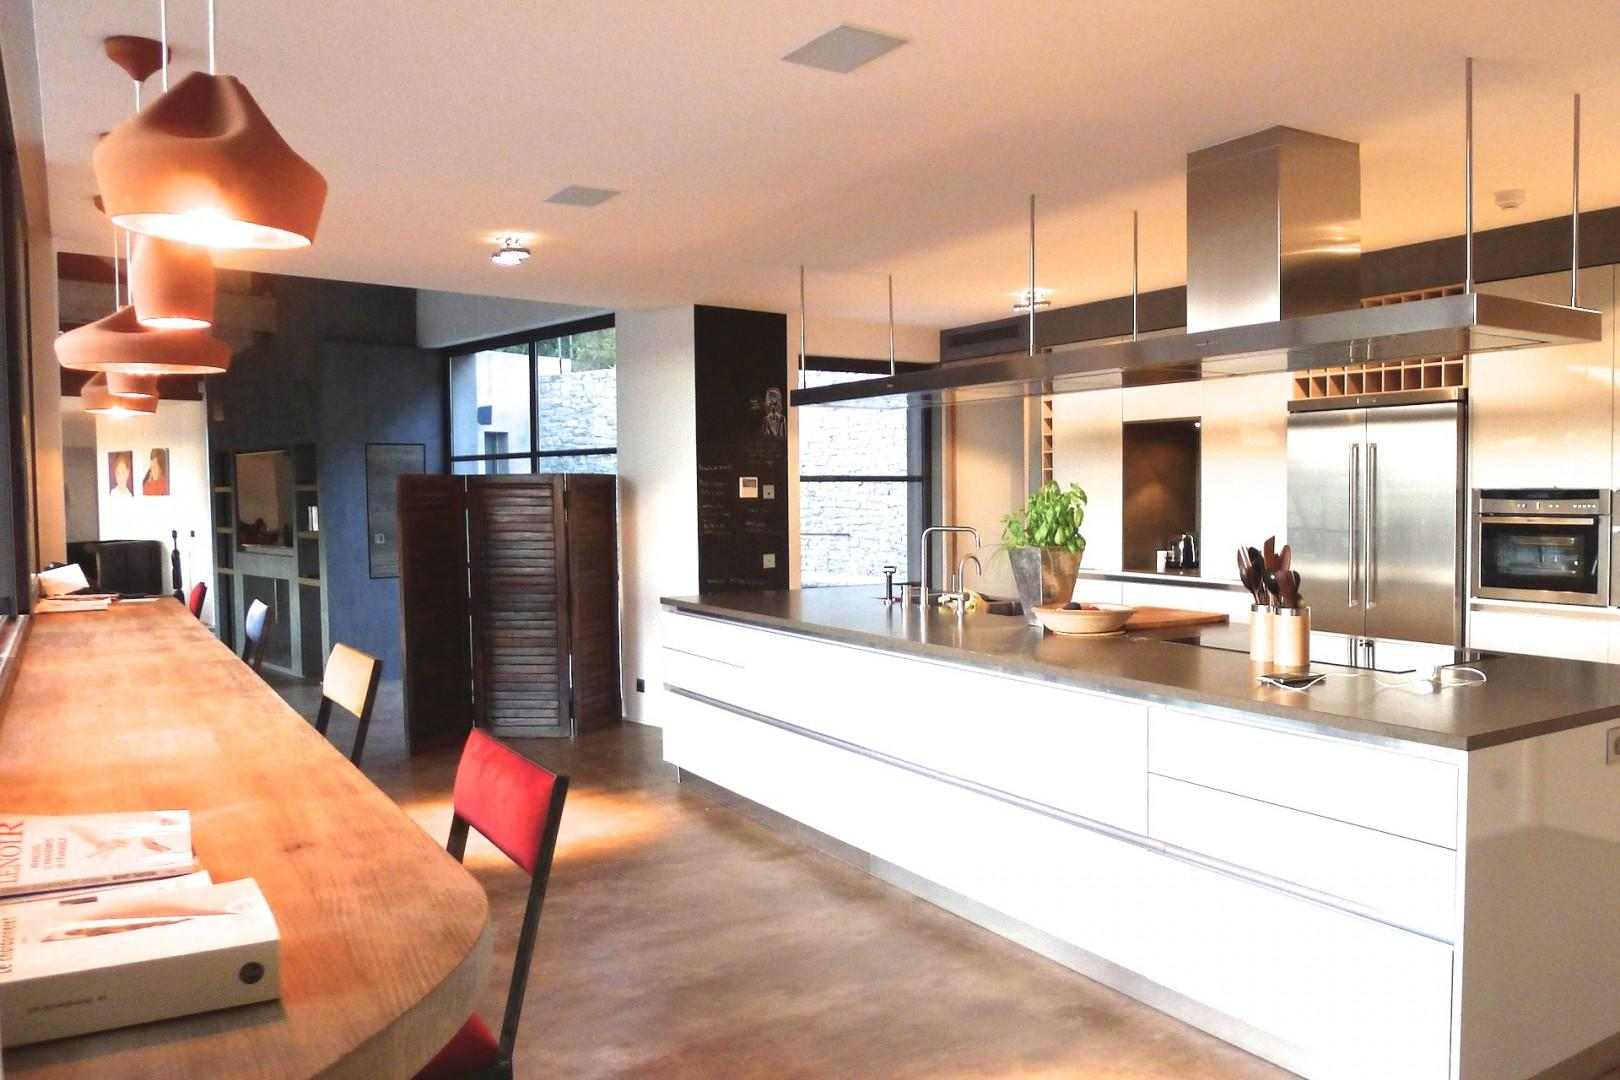 Open floor plan allows for socializing while preparing meals